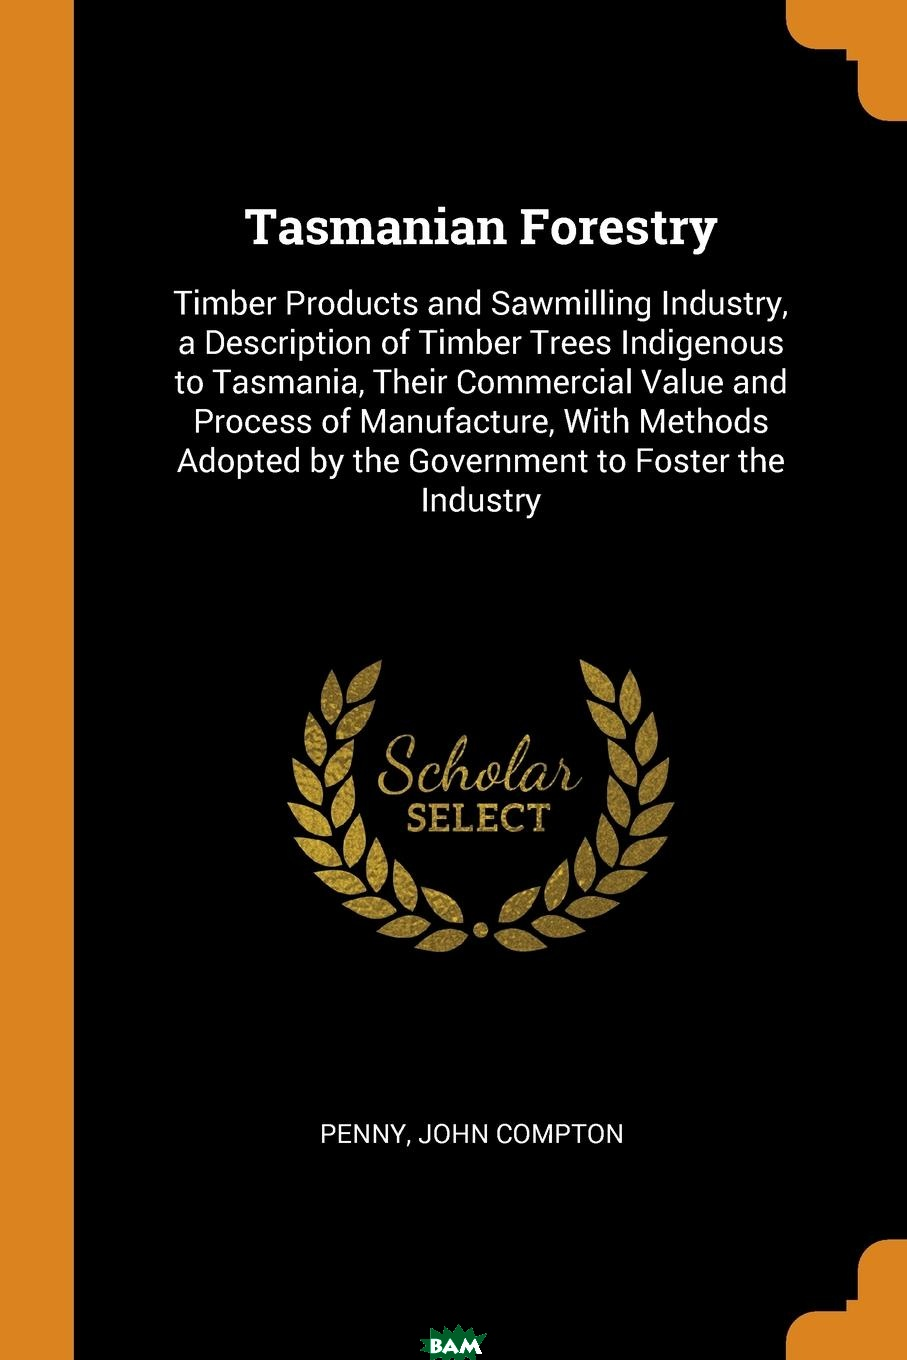 Купить Tasmanian Forestry. Timber Products and Sawmilling Industry, a Description of Timber Trees Indigenous to Tasmania, Their Commercial Value and Process of Manufacture, With Methods Adopted by the Gover, Penny John Compton, 9780353102071